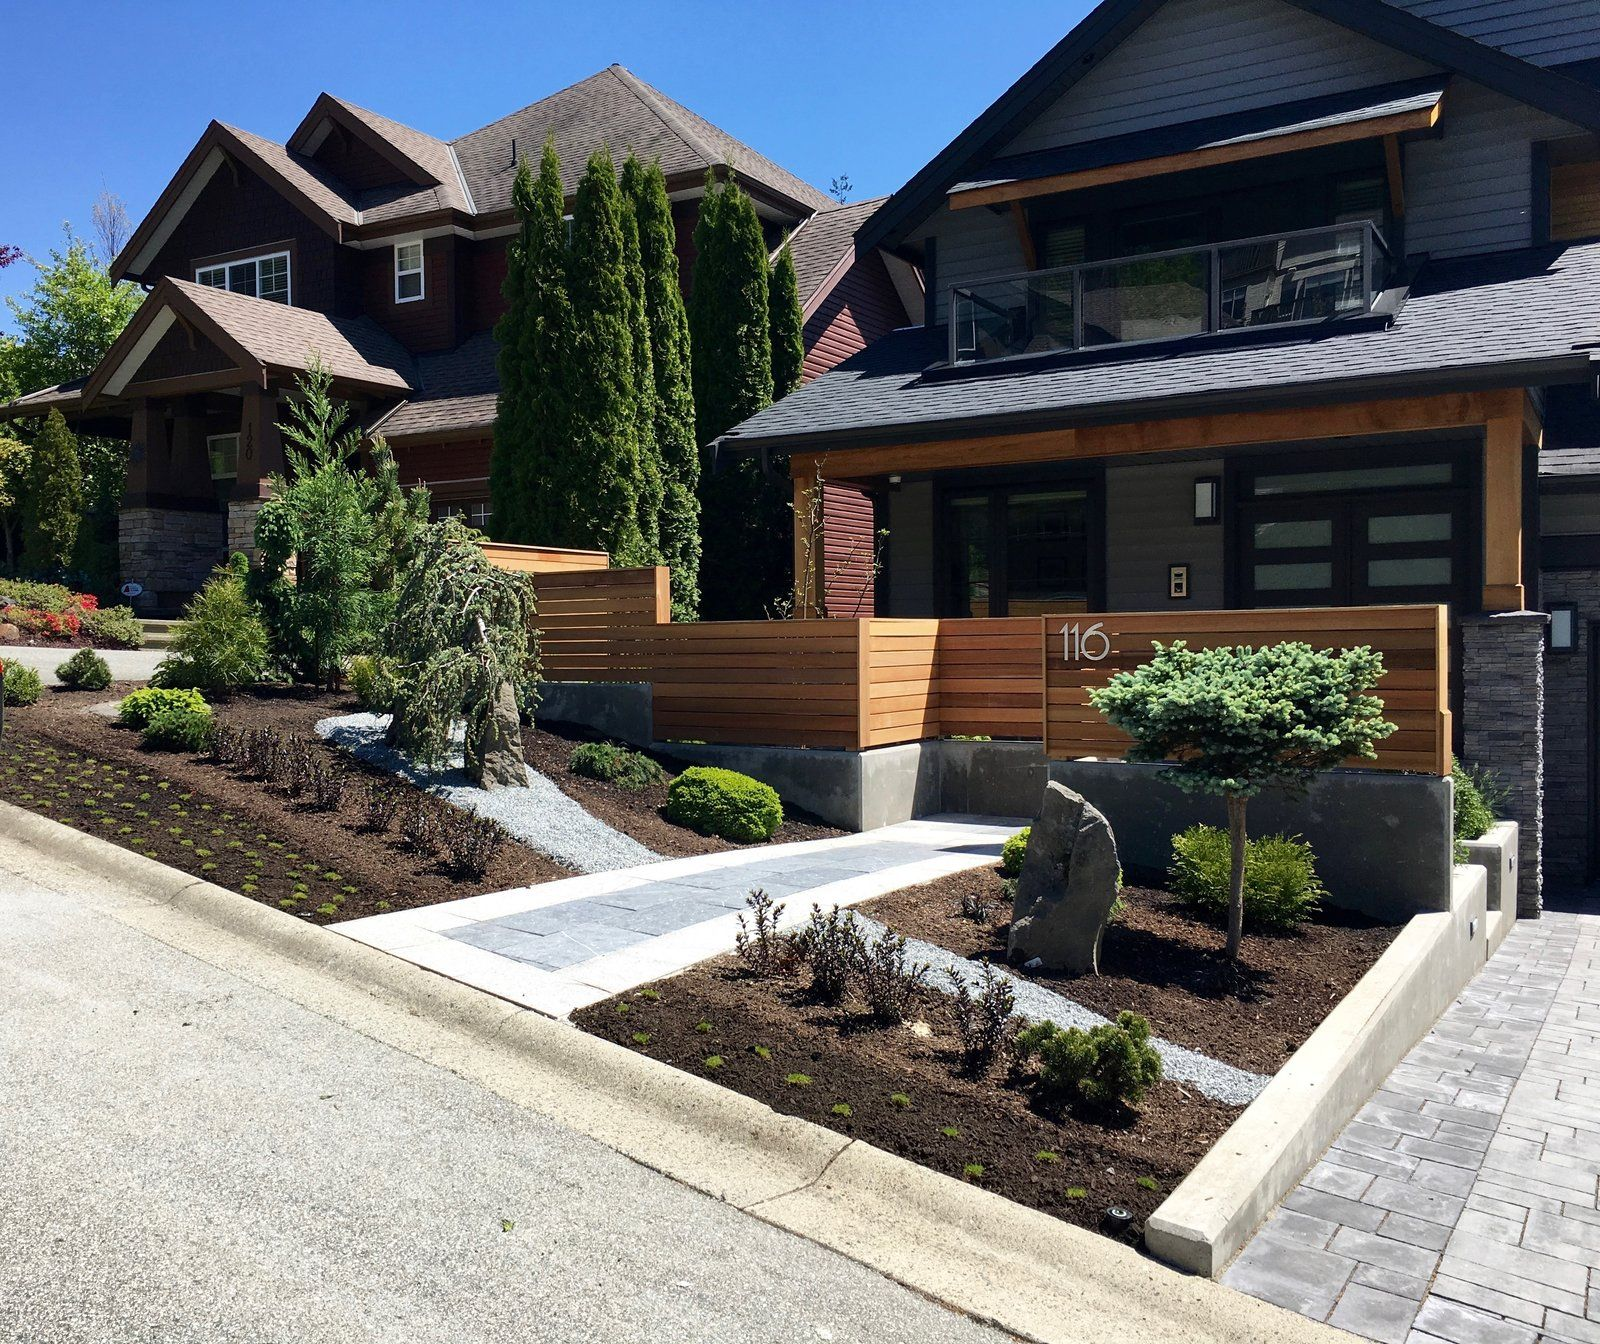 Modern Home With Outdoor Front Yard Slope Trees Shrubs